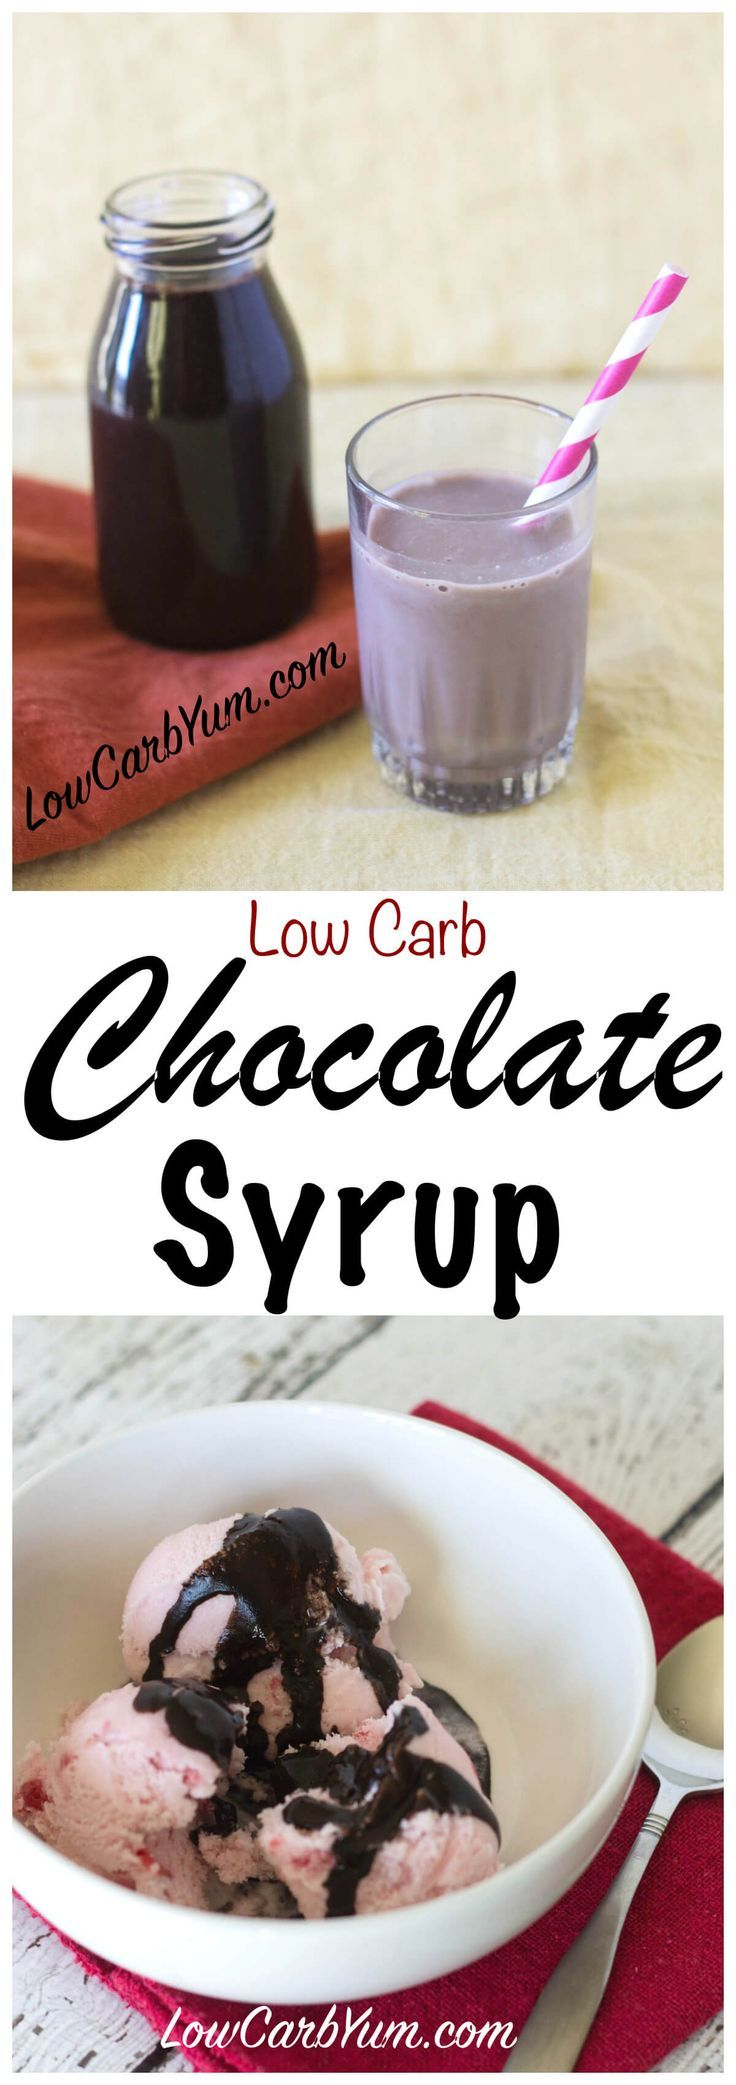 Need a low carb sugar free chocolate syrup to make chocolate milk and use as an ice cream topping? It's super easy to make your own with this easy recipe. Gluten free Keto Banting LCHF THM